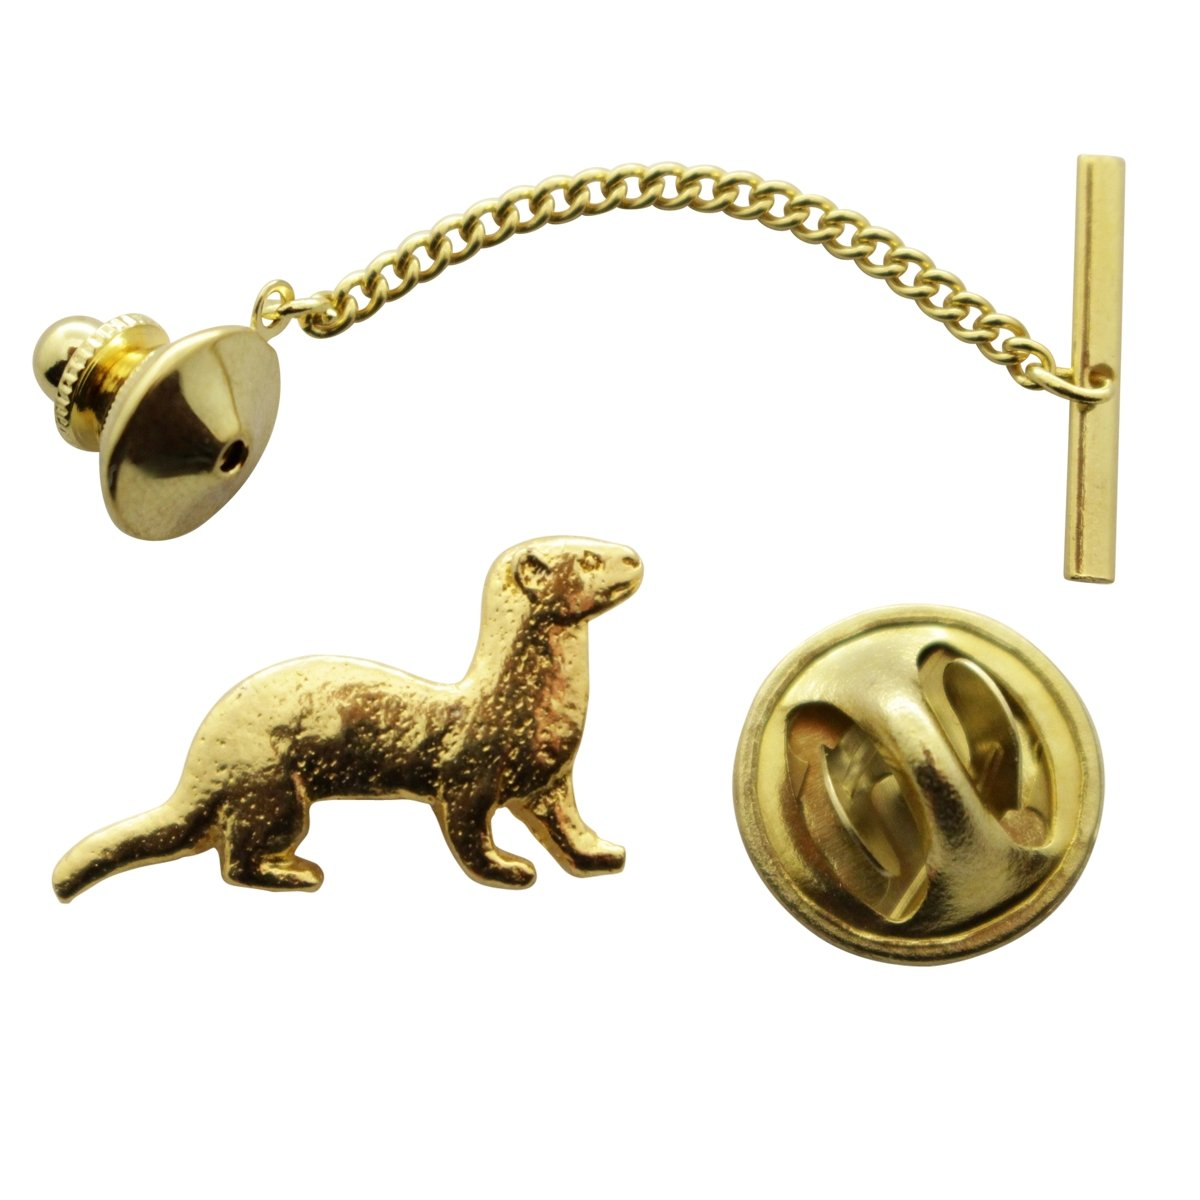 Ferret Tie Tack ~ 24K Gold ~ Tie Tack or Pin ~ Sarahs Treats /& Treasures